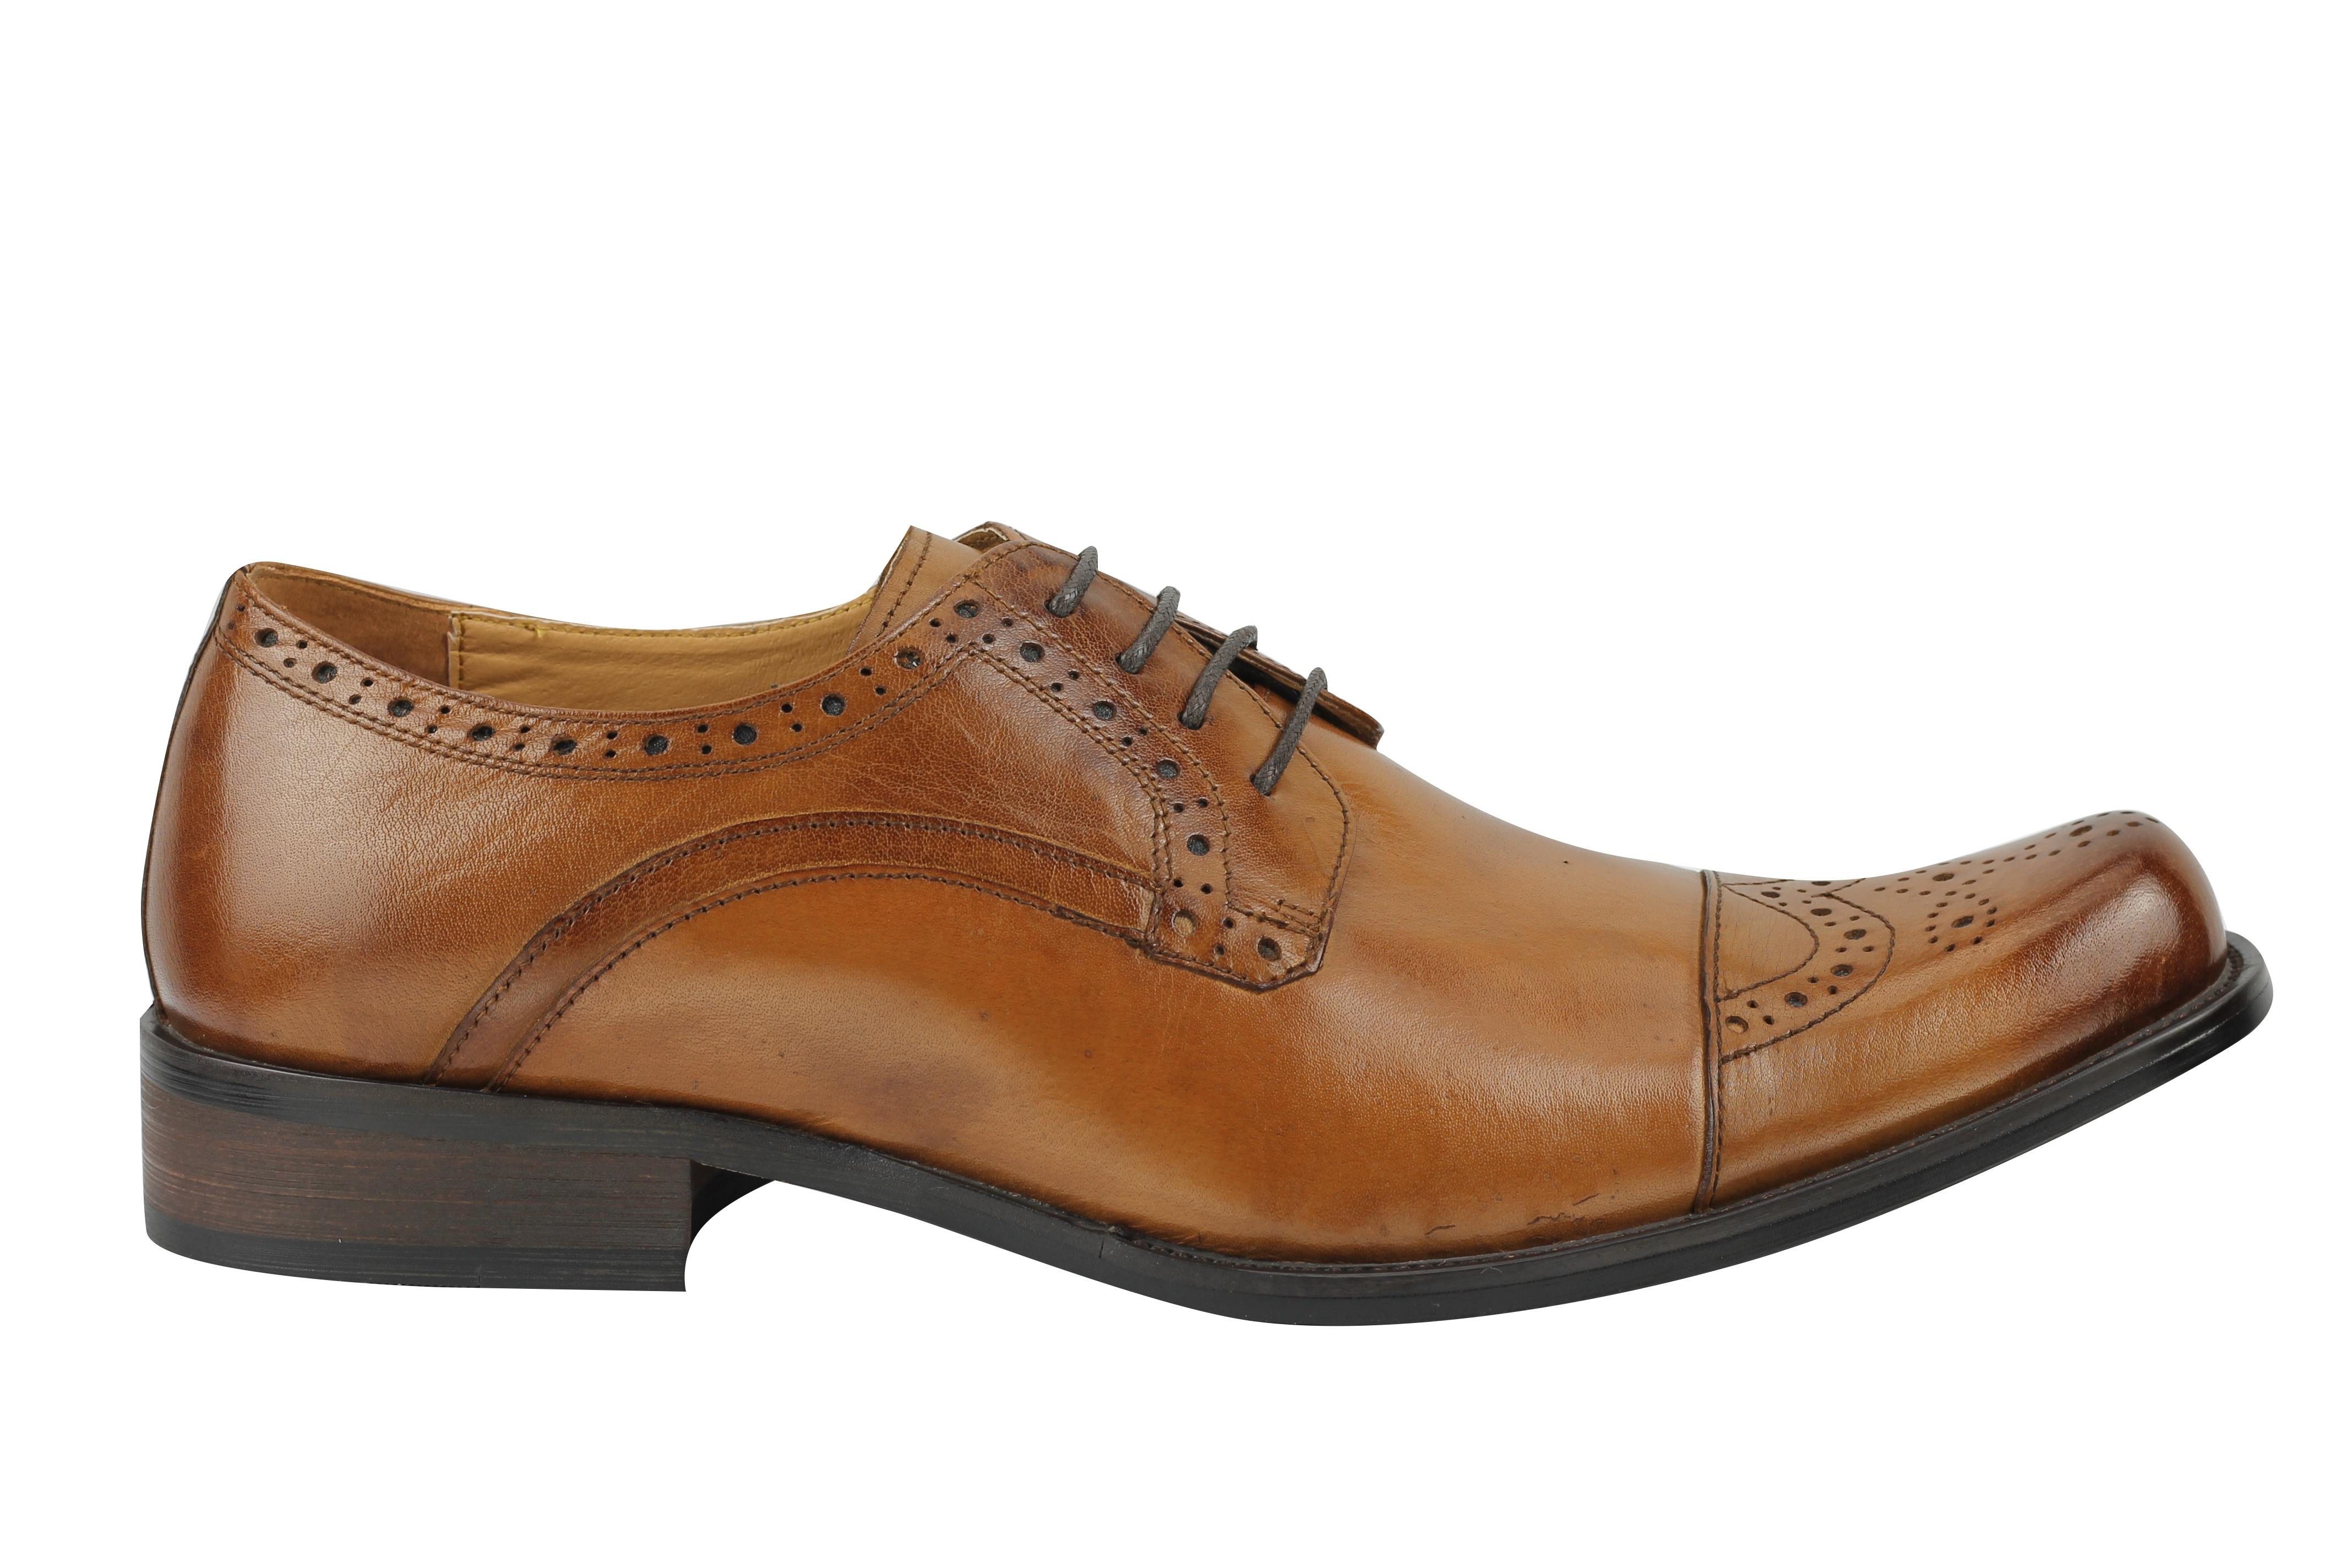 New Mens Vintage Polished Real Leather Tan Lace Up Shoes